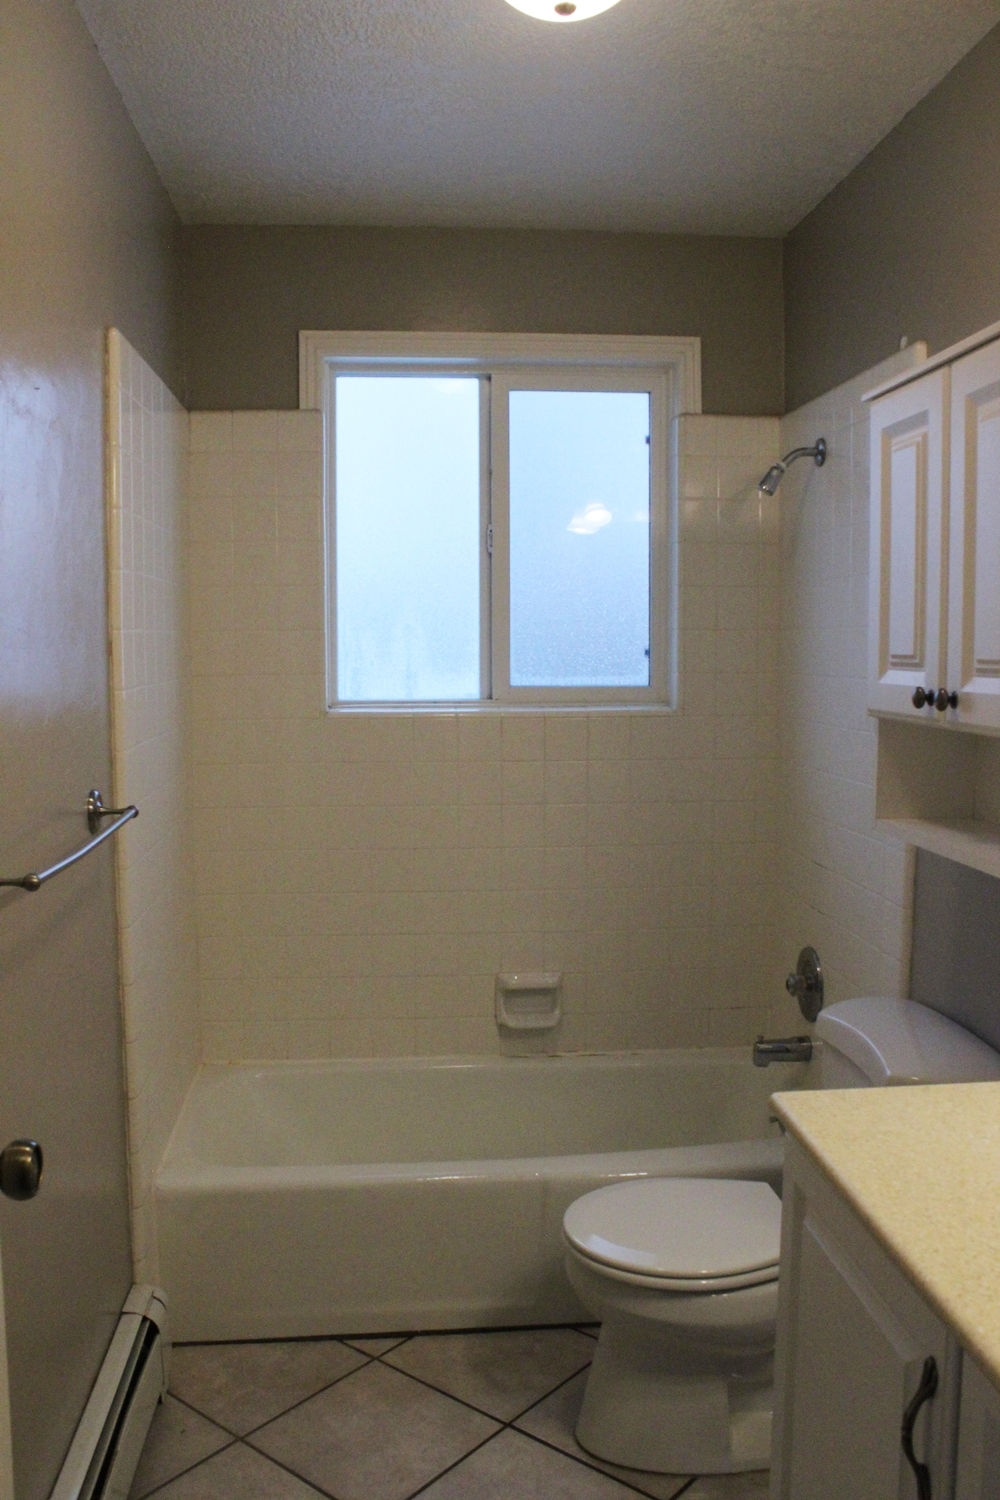 Bathtub Surround With Window Cut Out